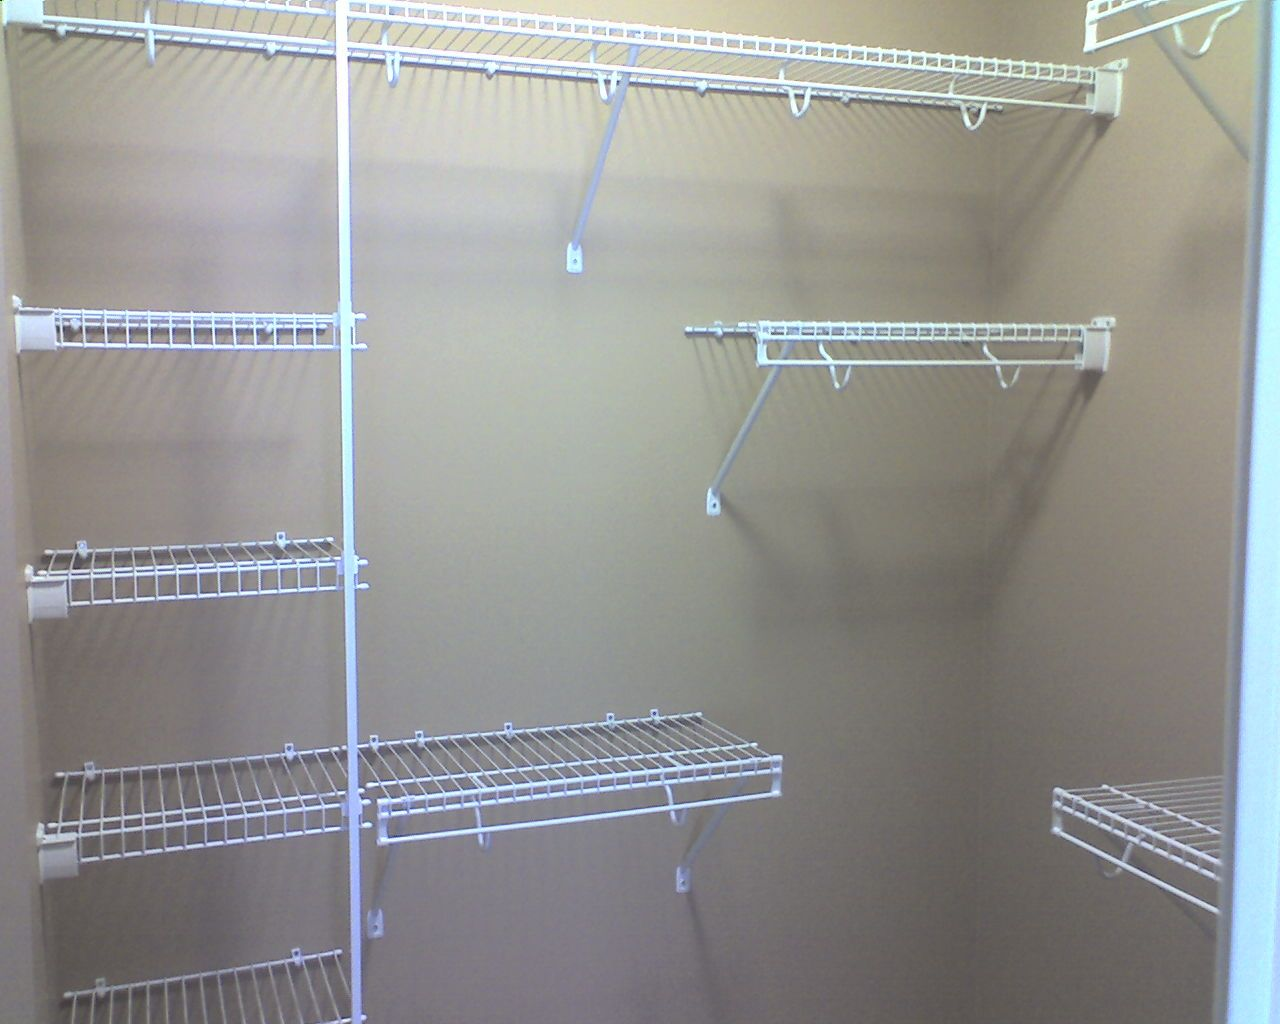 rubbermaid wire closet shelving. Lee Rowan Wire Closet Shelving Rubbermaid Y